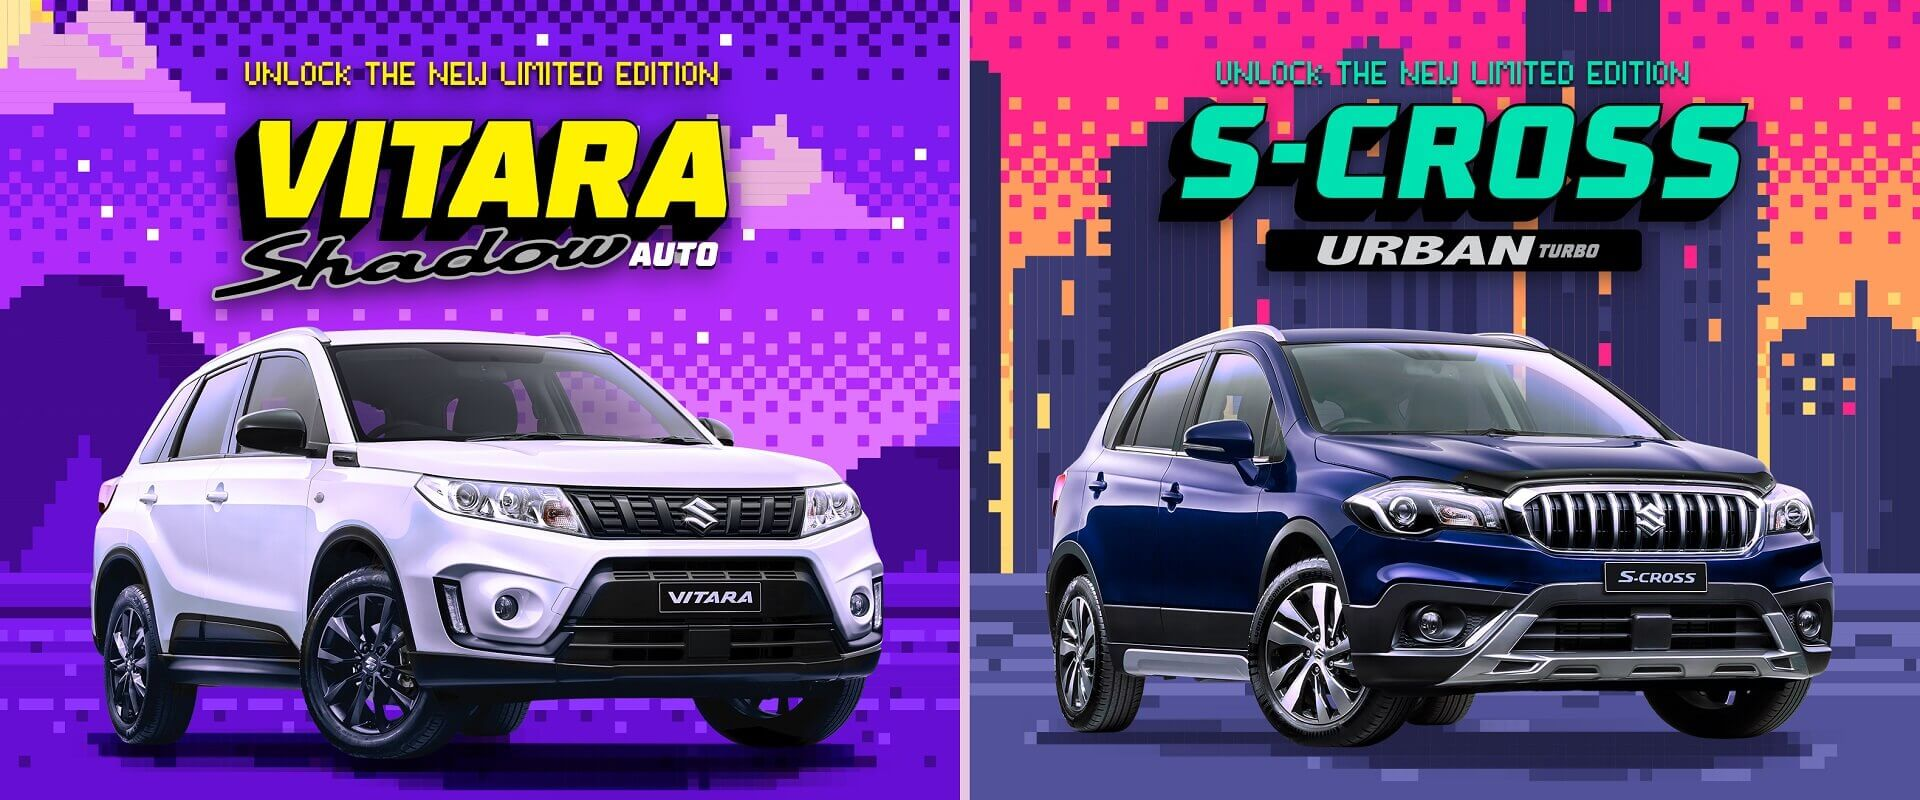 Suzuki Limited Edition Vitara Shadow and S-Cross Urban